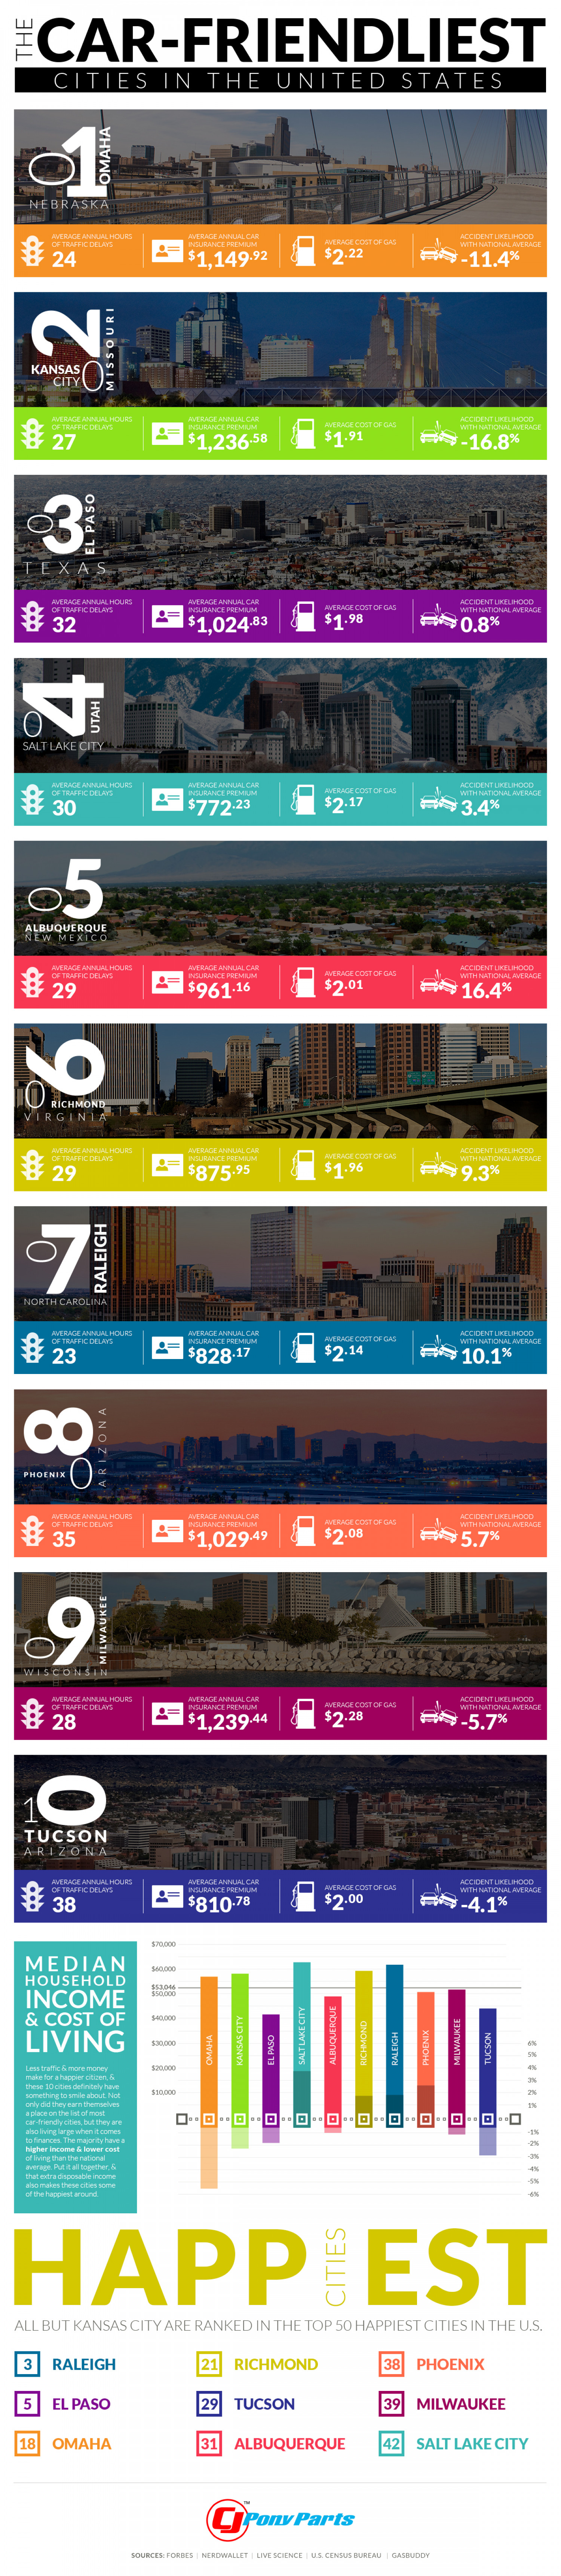 Car-Friendliest Cities in the U.S. Infographic